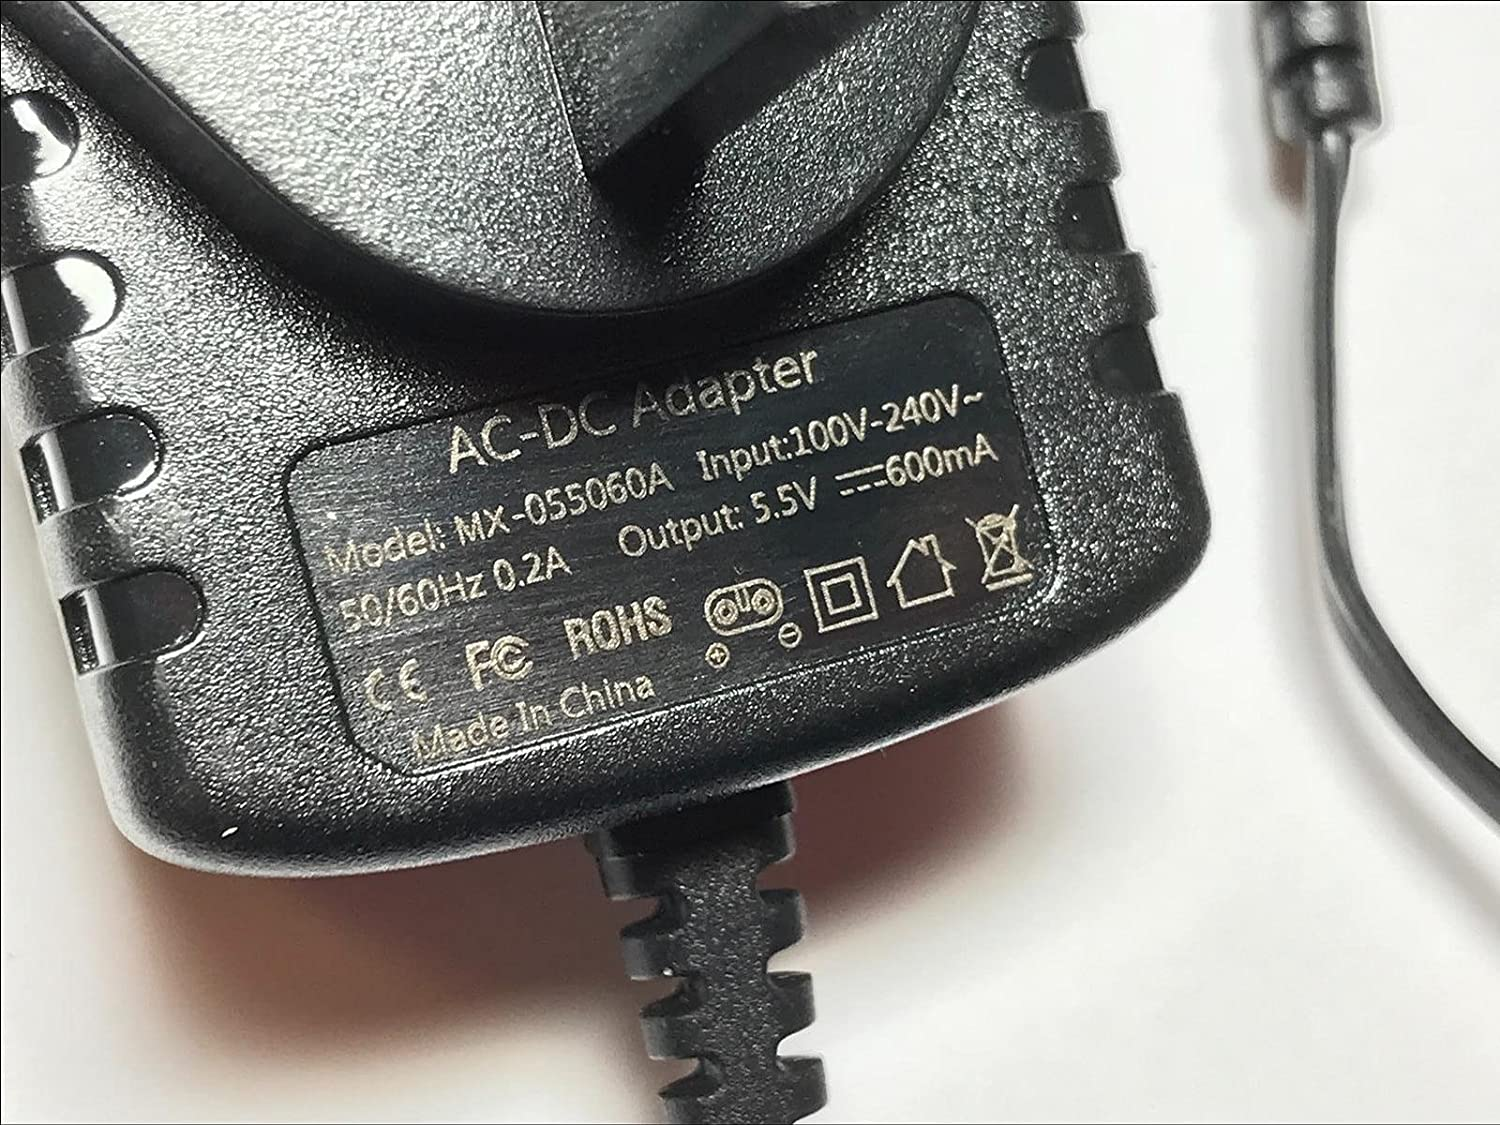 Replacement Karcher 6.654-311.0 5.5V 600mA Window Vac WV Charger Power Supply